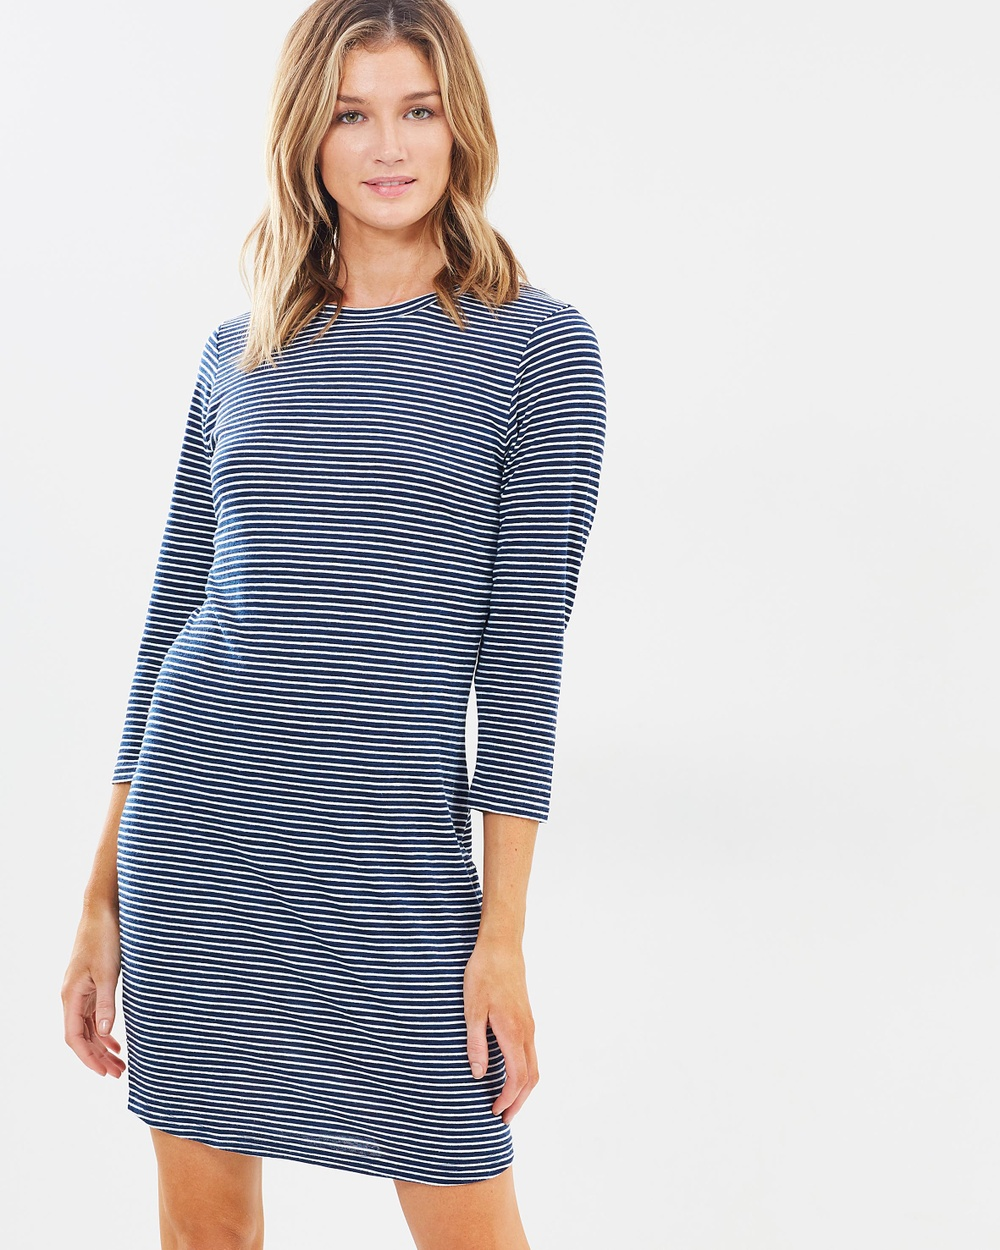 Nude Lucy Dacey Stripe Dress Dresses Navy Stripe Dacey Stripe Dress